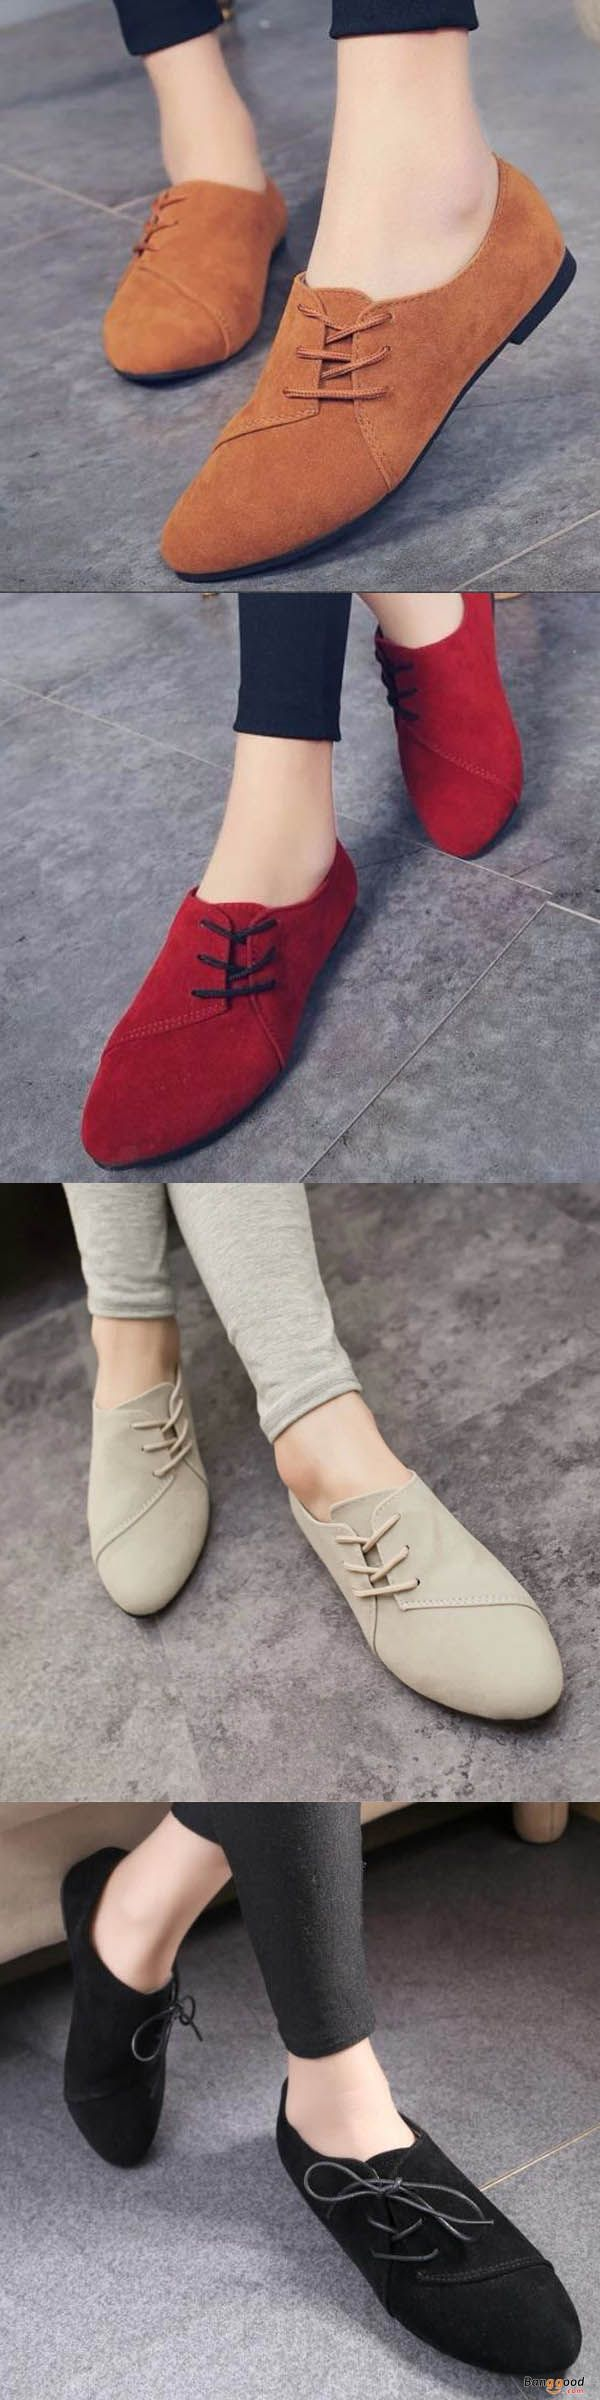 US$17.99+ Free shipping. Women Casual Leather Slip On Outdoor Flat Loafers. flat shoes, womens flats, slip on shoes, suede shoes, suede loafers, fall style, fall shoes, winter shoes, woman fashion, casual style. Buy now!